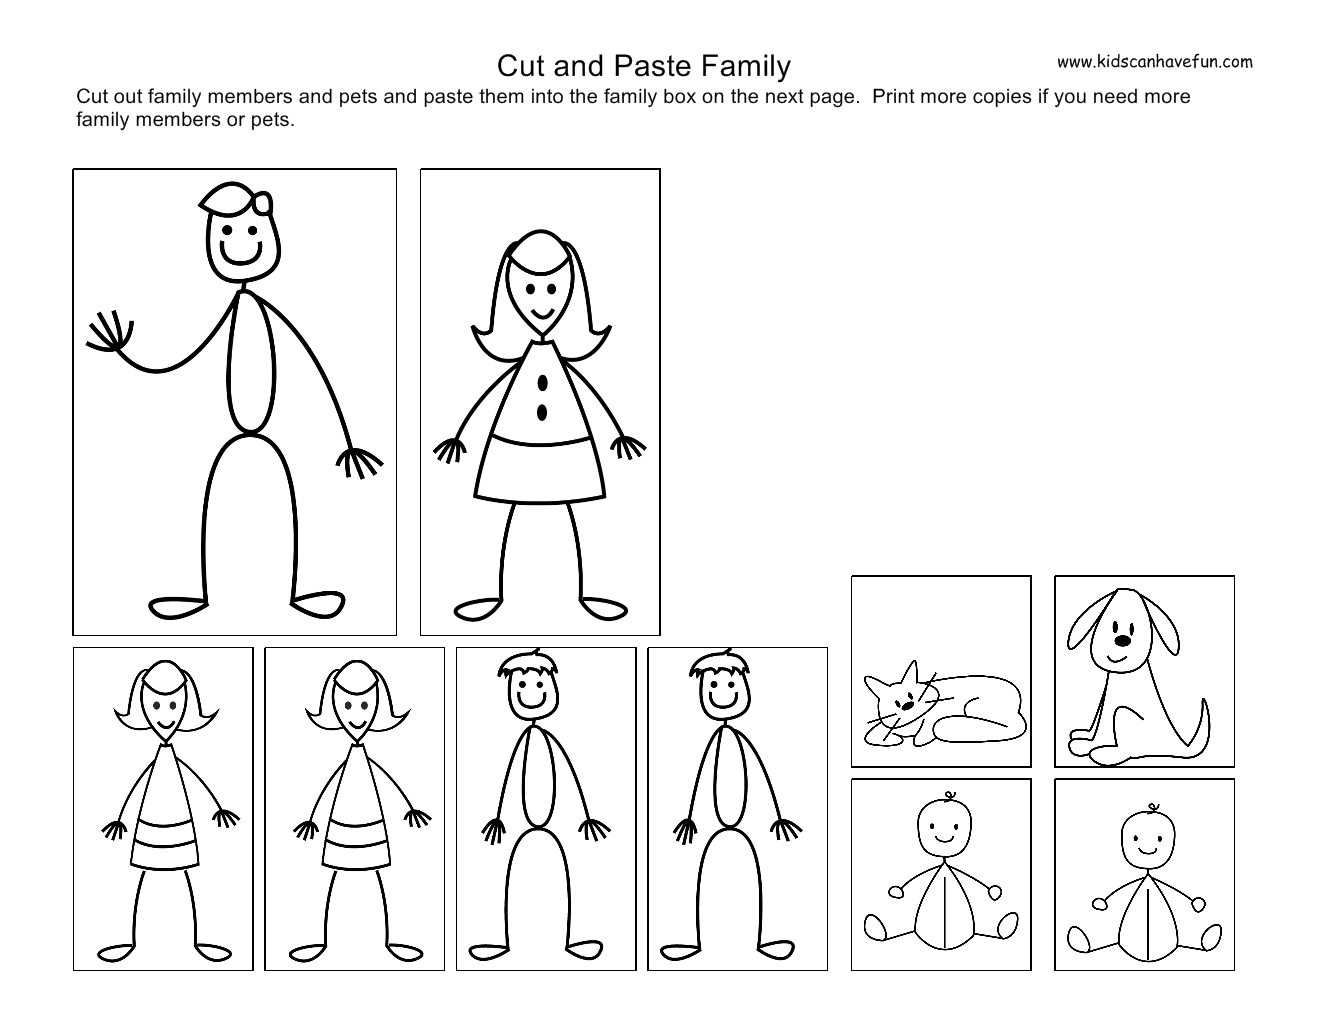 Free Worksheet Cut And Paste Worksheets For Pre K 1000 images about preschool bible lessons on pinterest easter help the kids learn school before their first day or when returning back to with cut and paste workshe